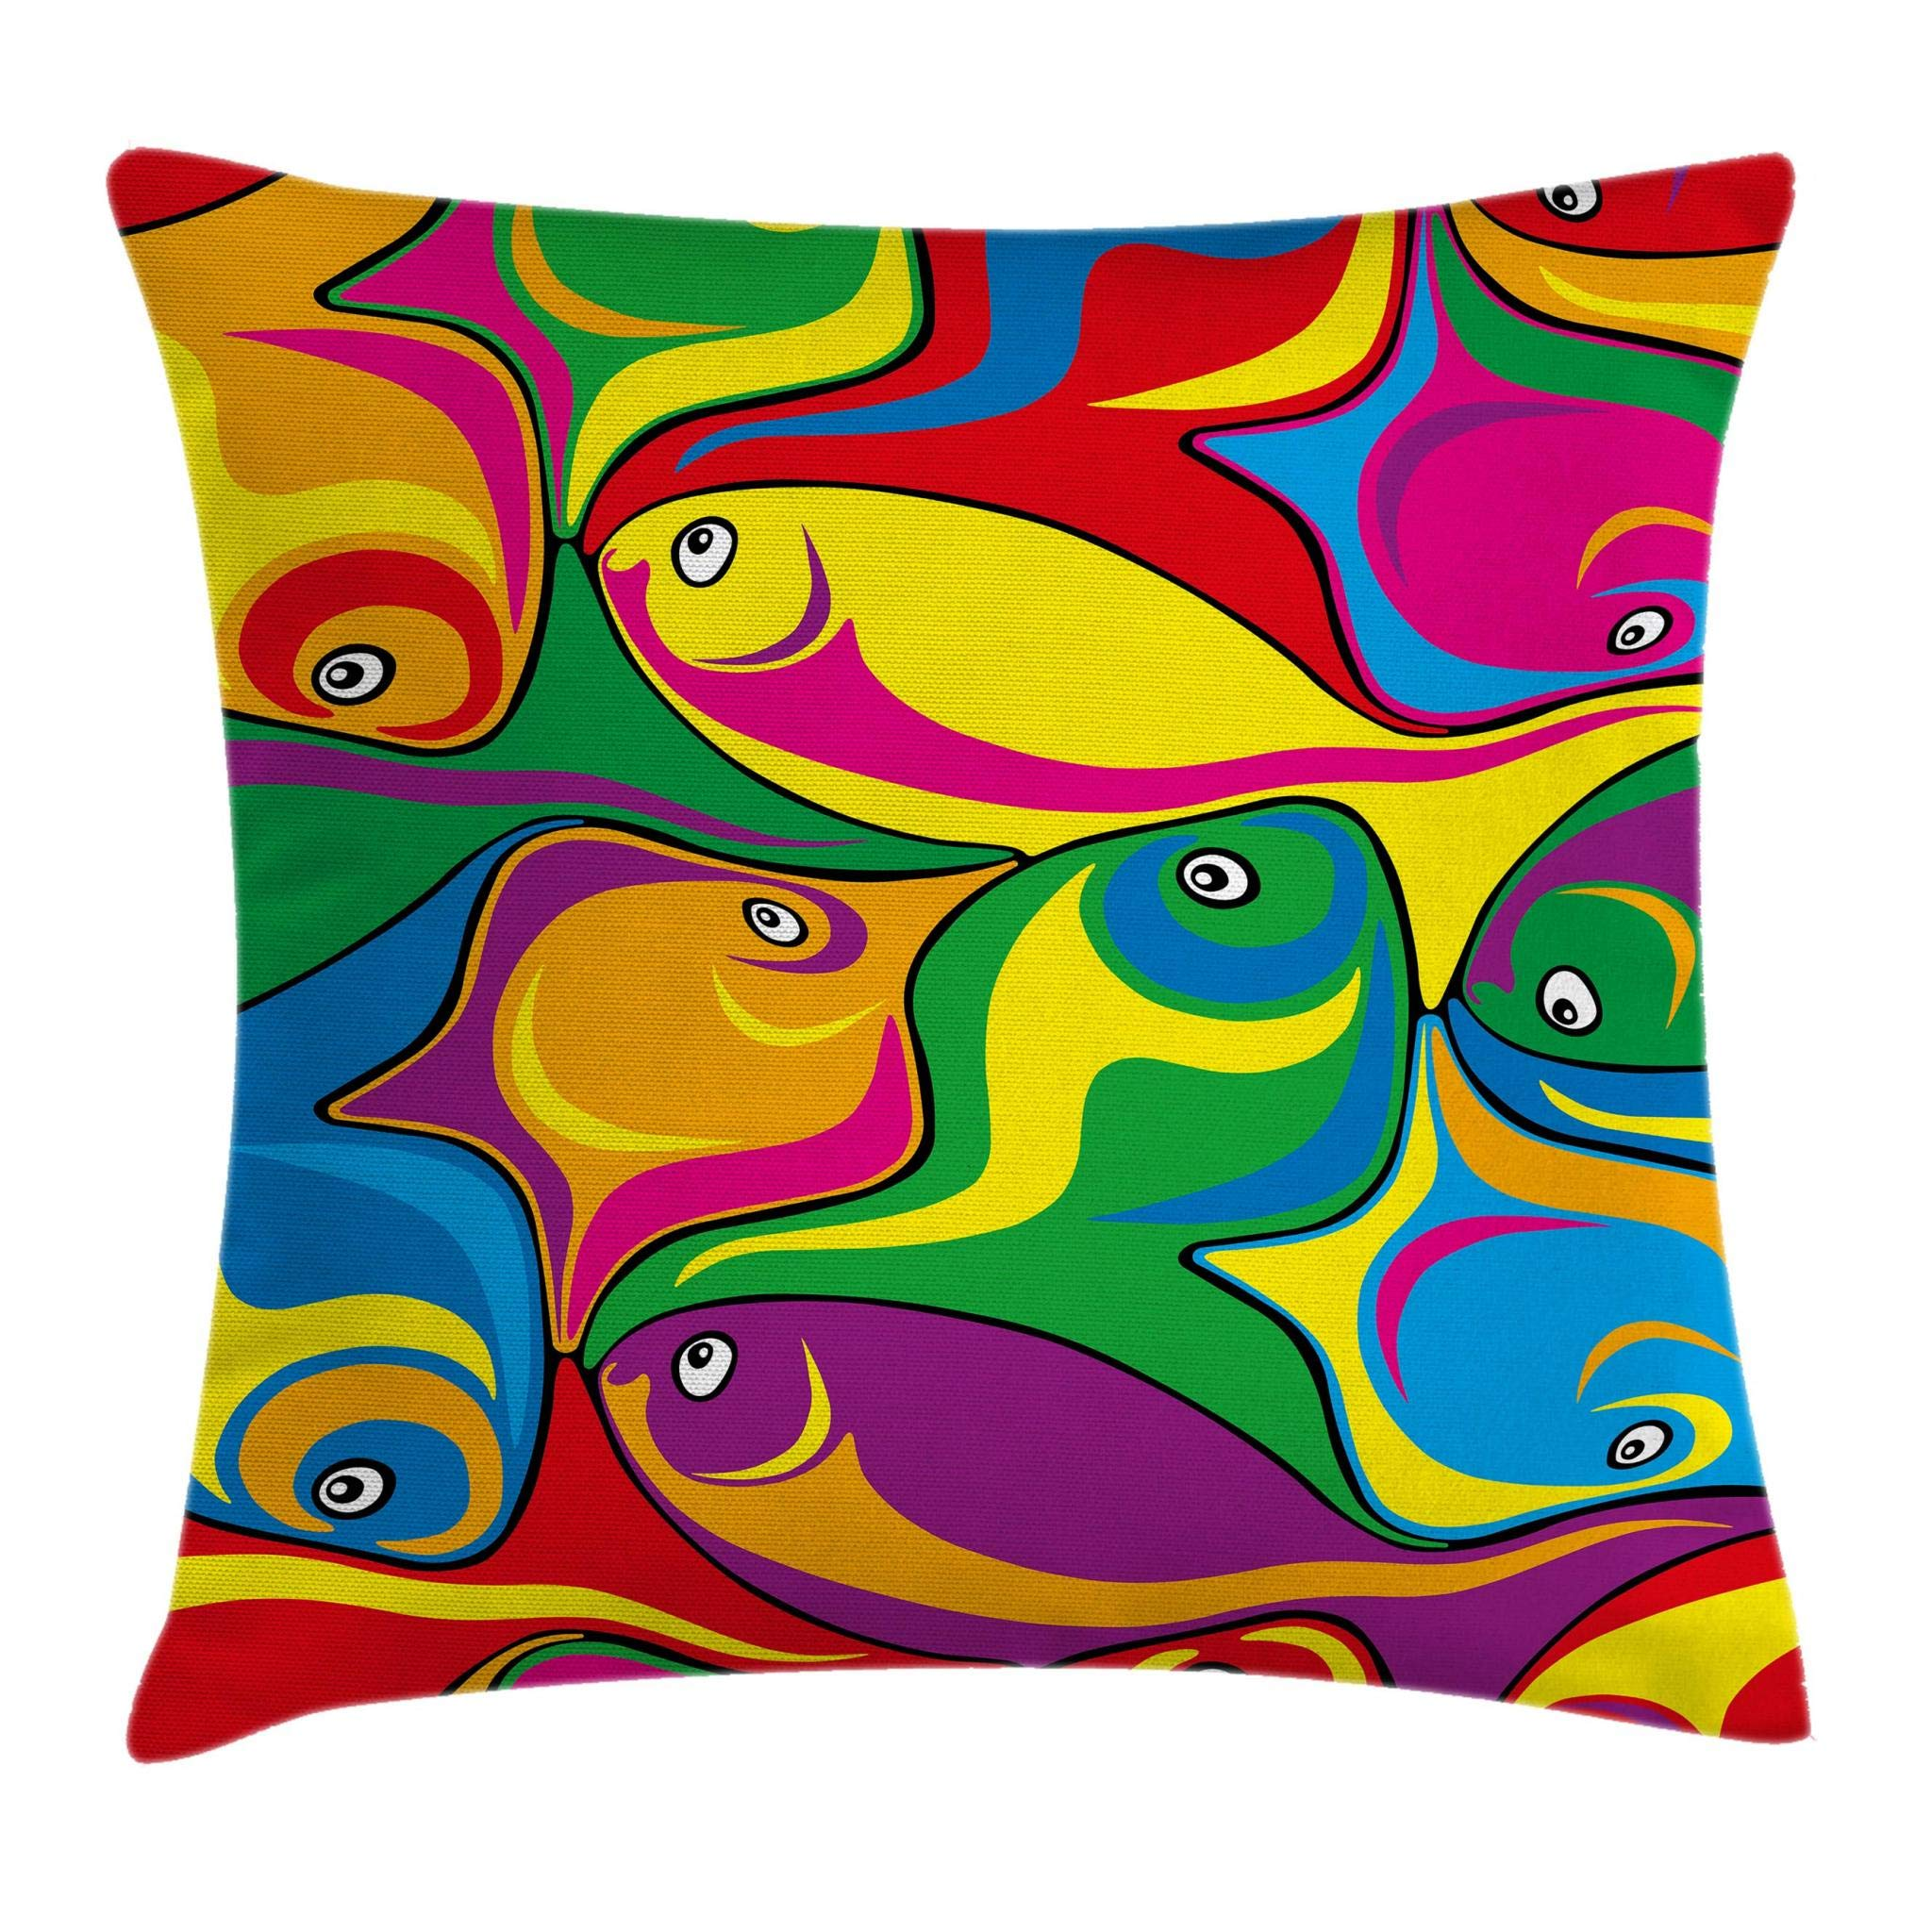 Ambesonne Cartoon Decor Throw Pillow Cushion Cover, Fish Pattern in Mixed Fluid Vibrant Colors Childish Funny Comic Kids Nursery Theme, Decorative Square Accent Pillow Case, 18 X 18 Inches, Multi